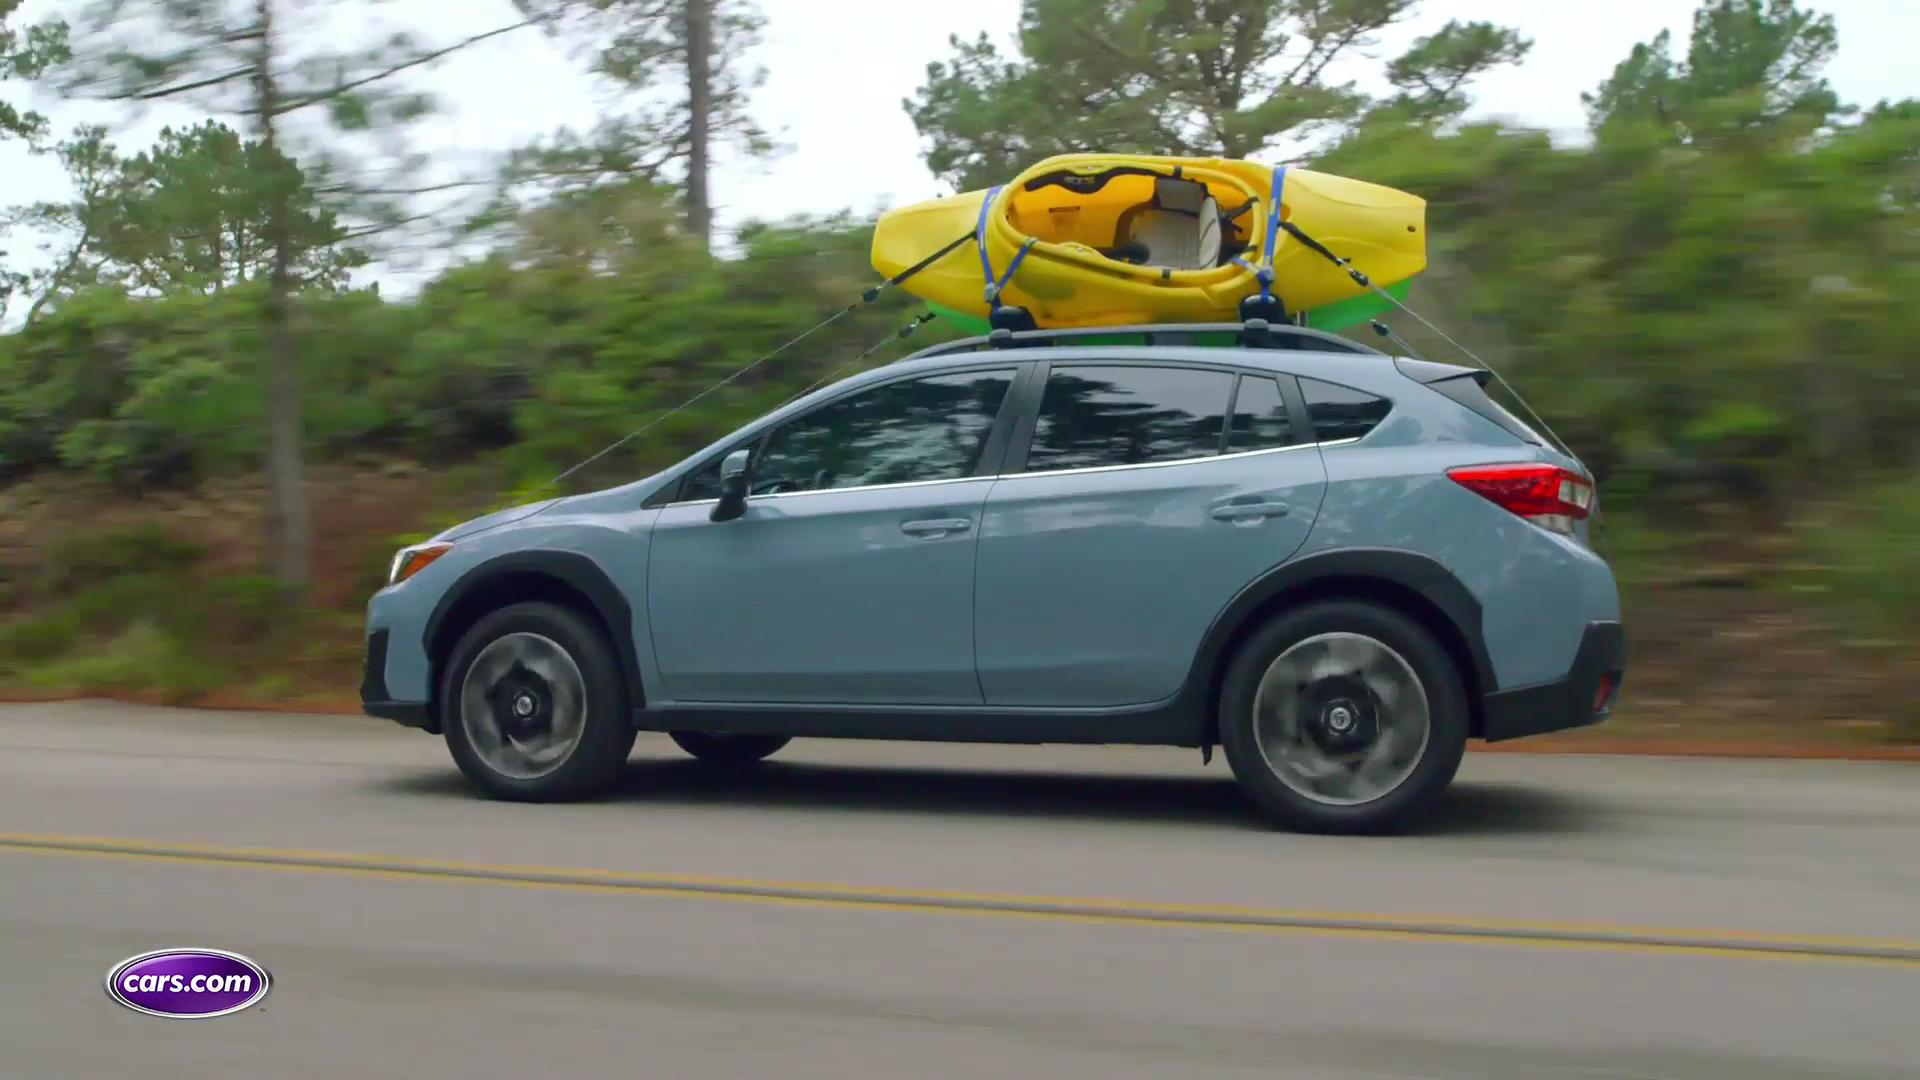 Video: 2018 Subaru Crosstrek Review – Cars.com